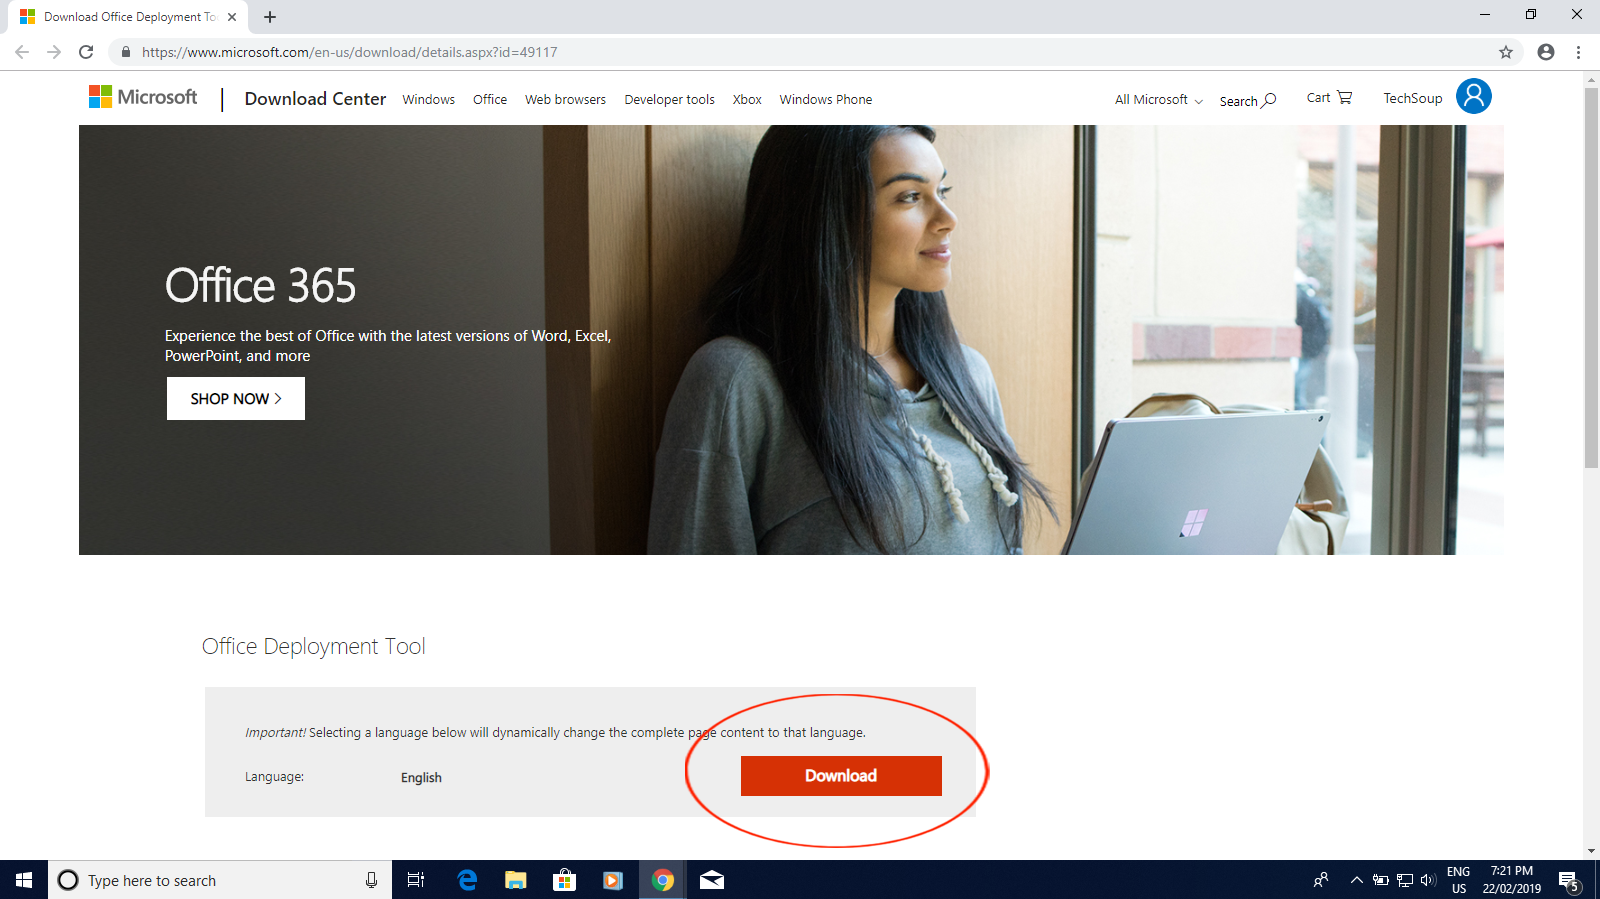 How to Install Office 2019 for Windows | TechSoup Canada